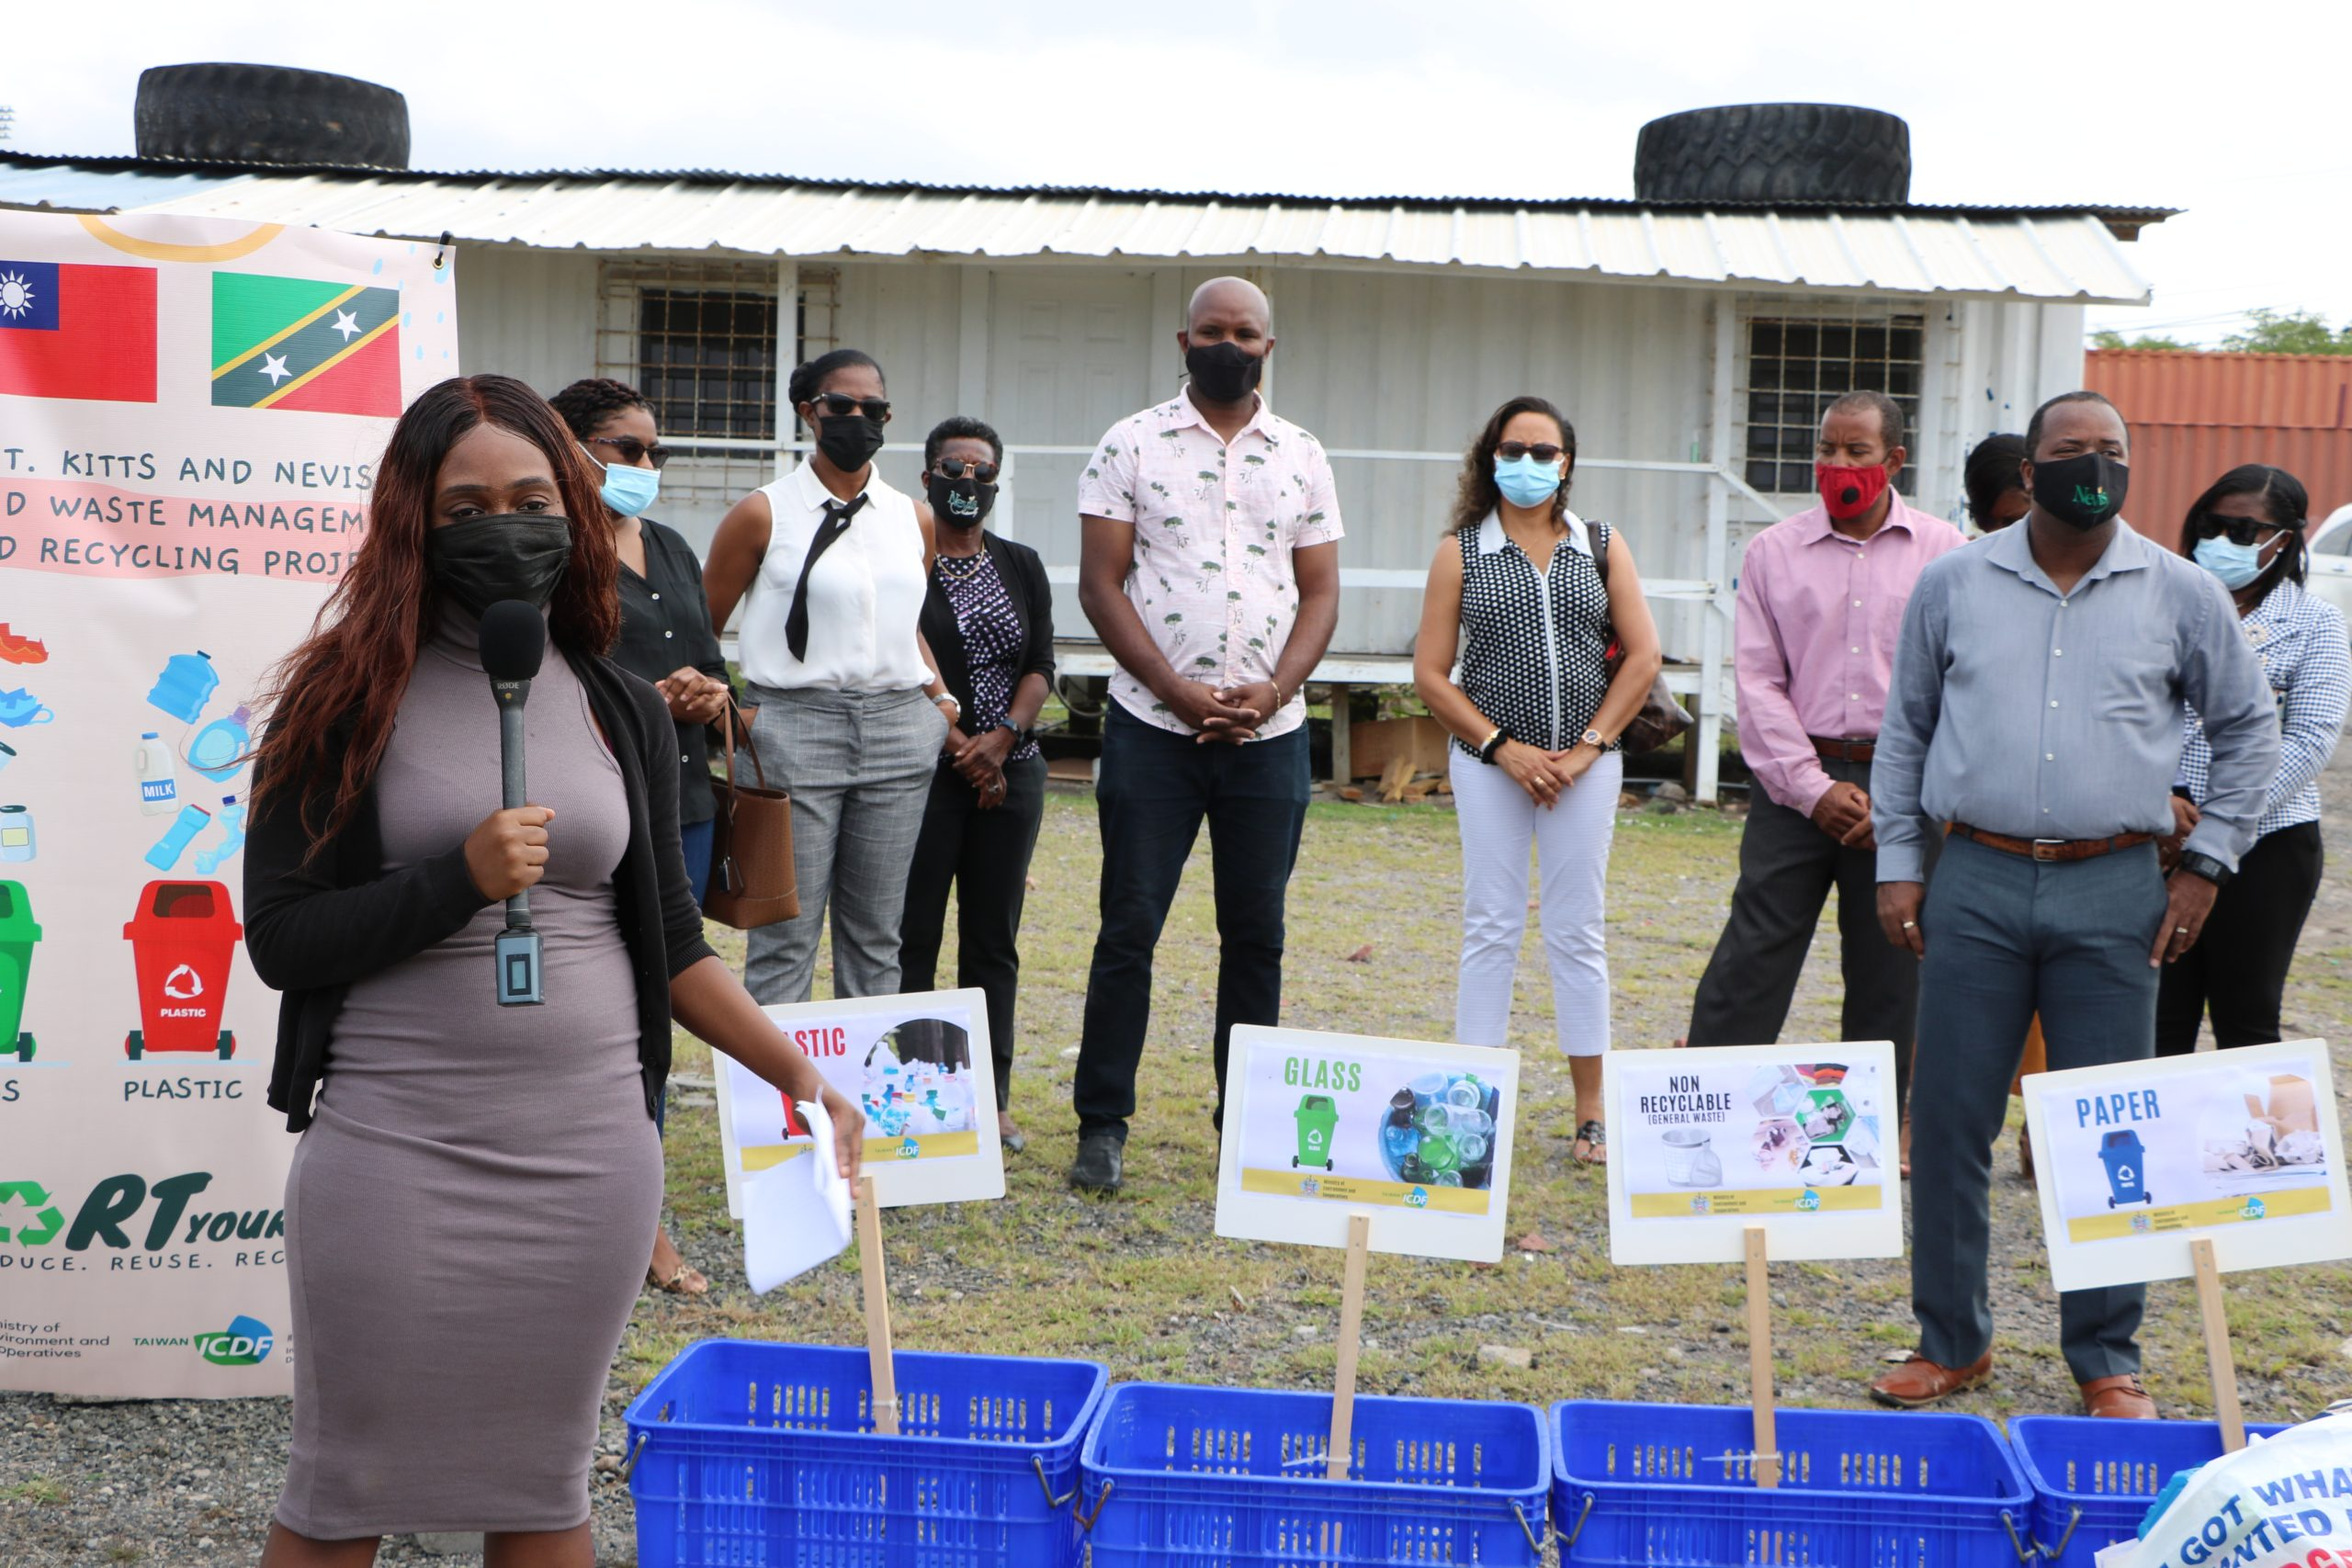 Ms. Jadine Yarde, Chief Executive Officer of the Nevis Tourism Authority launching the Sustainable Project at Long Point on October 13, 2021